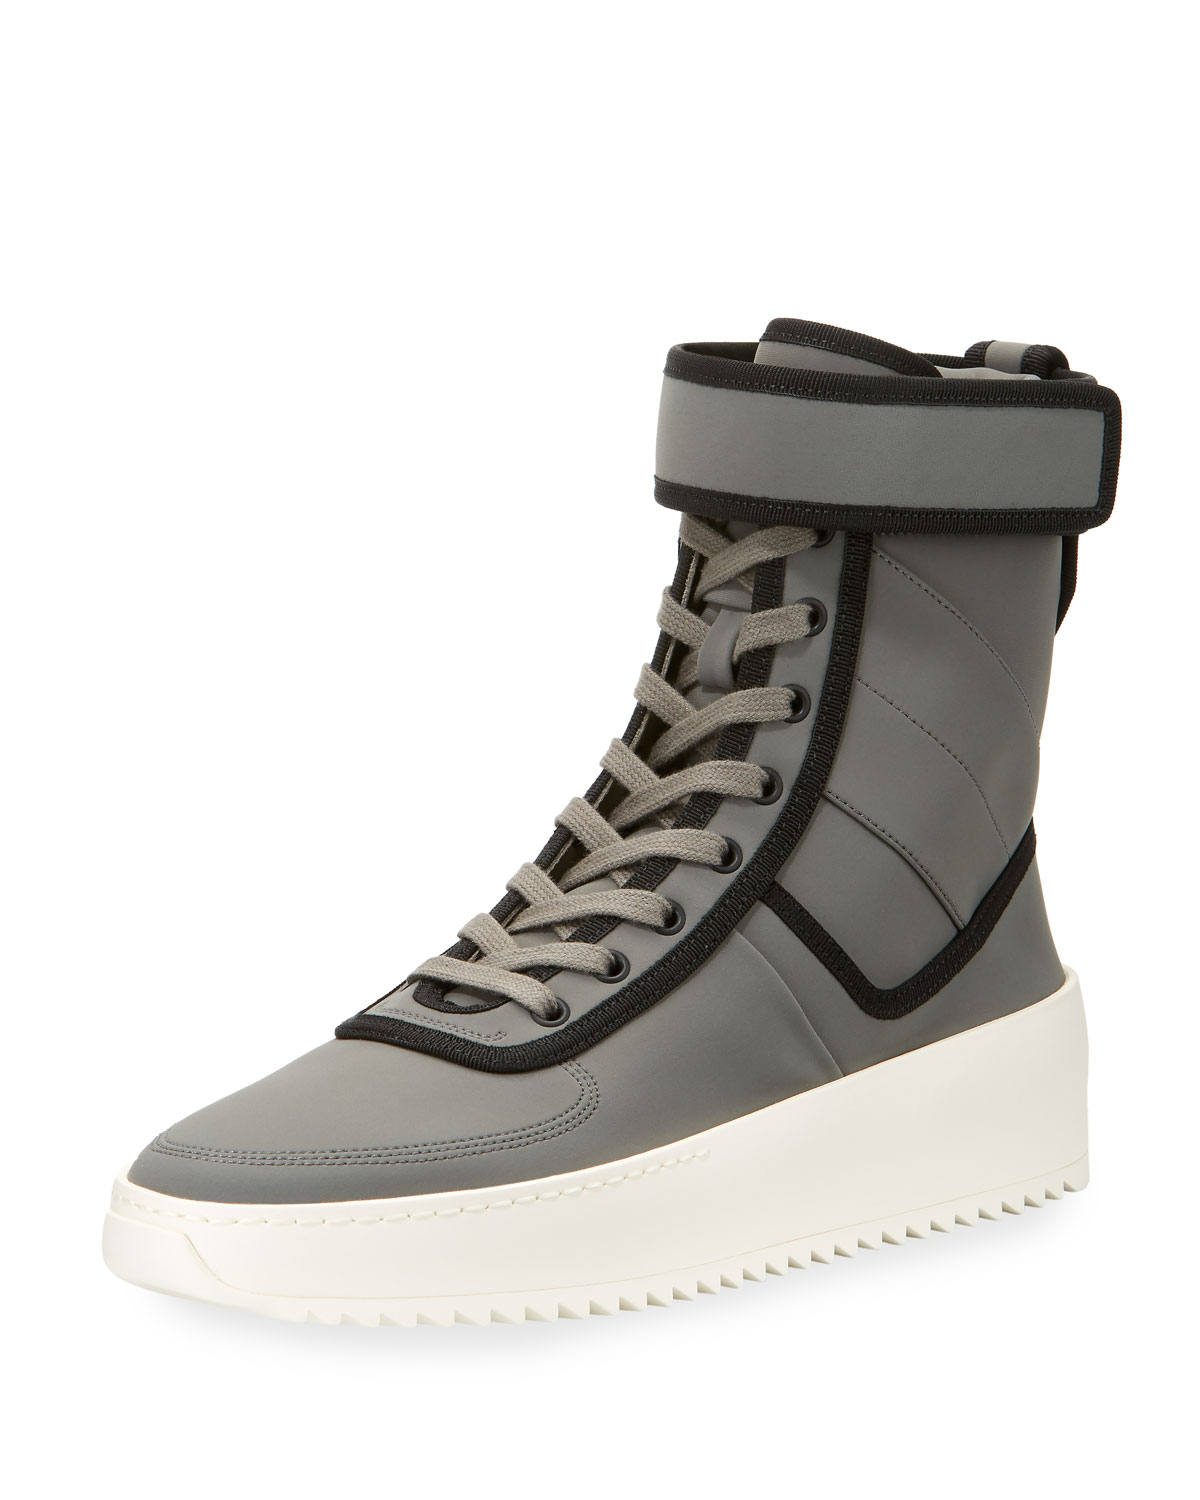 f91362f0f841 Fear of God Men s Leather High-Top Military Sneakers